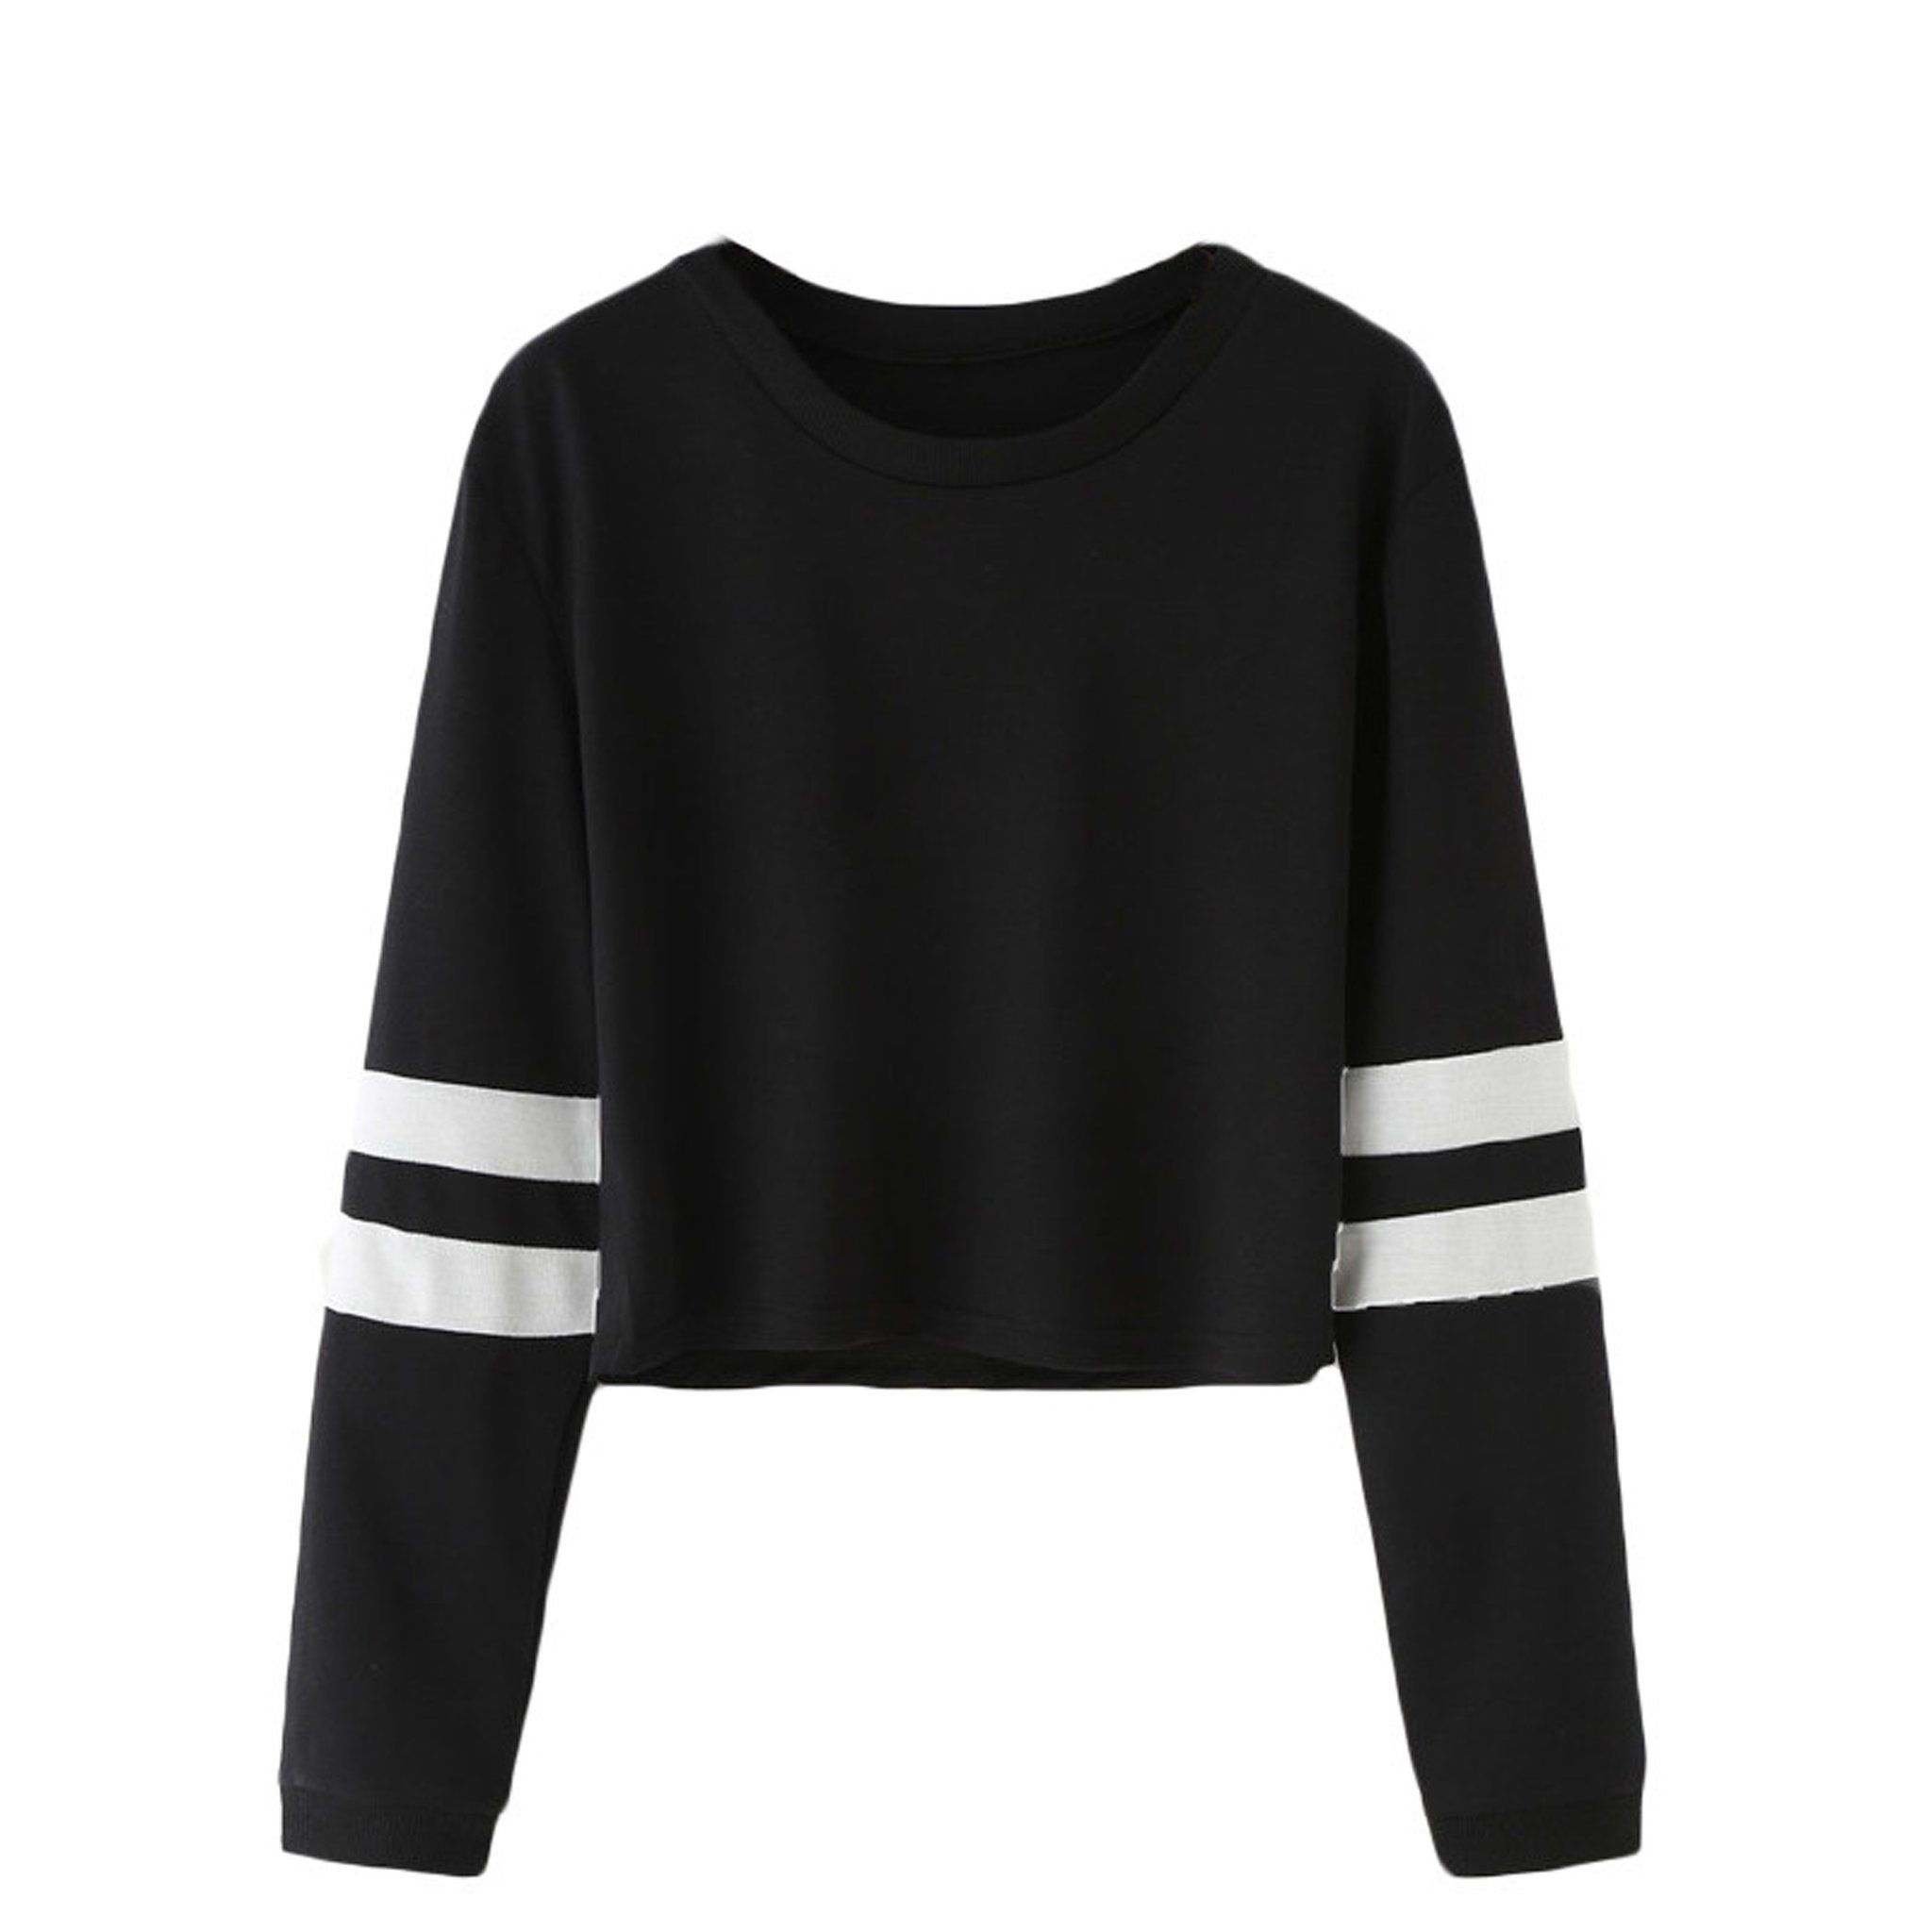 7dd1d1e075868 Cute Casual Back to School Outfit Ideas 2018 for Teen Girls 2018 - Double  Striped Varsity Cropped Top Sweatshirt - Lindas ideas casuales de regreso a  la ...